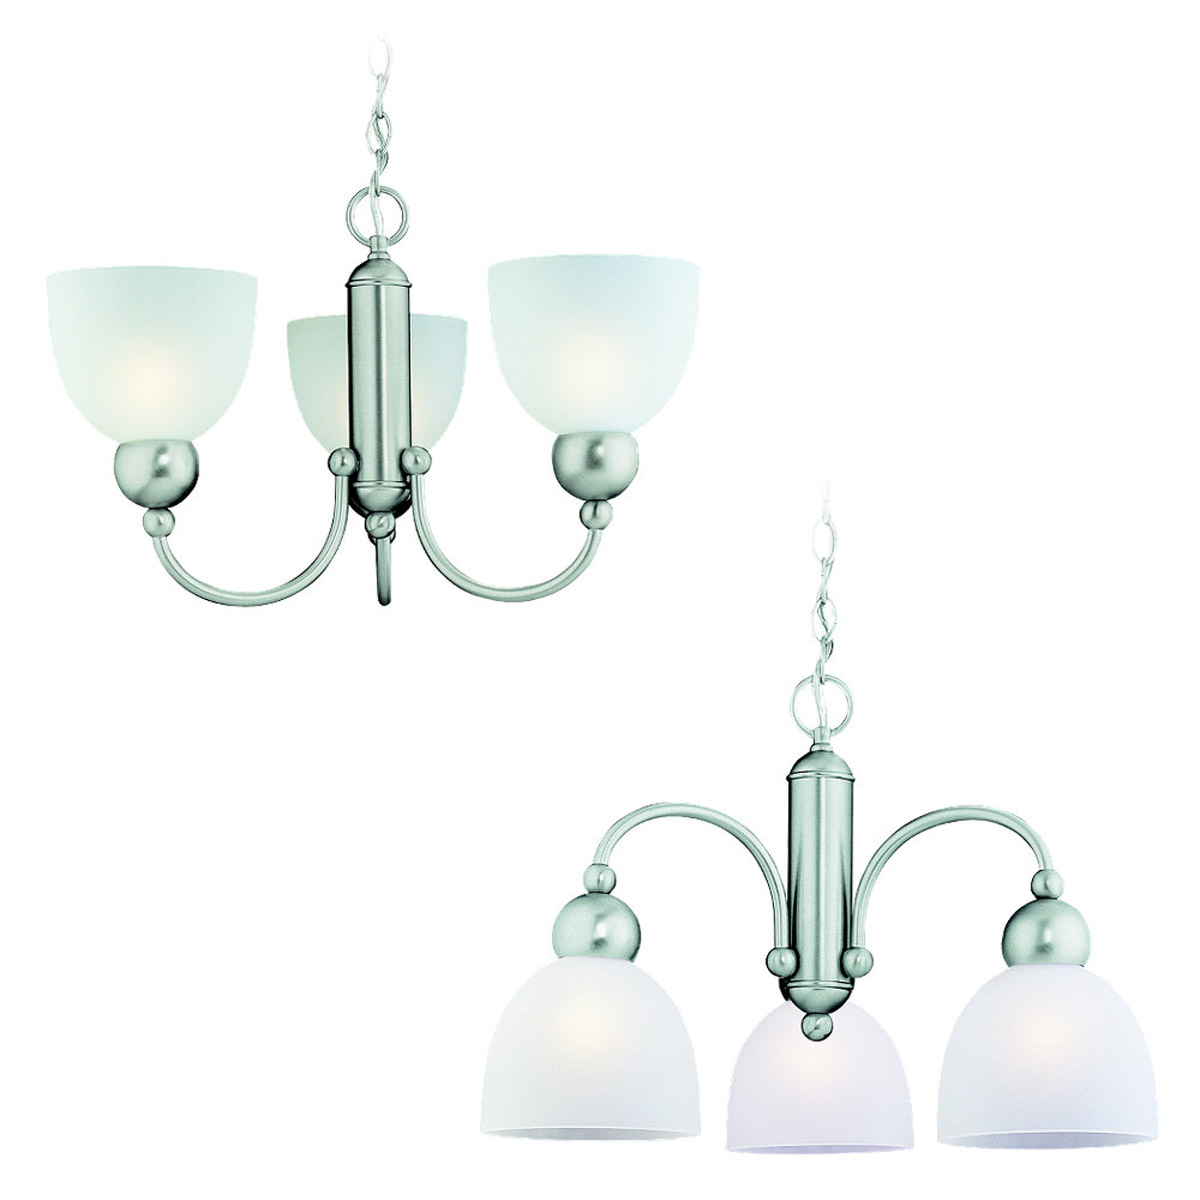 Sea Gull Lighting Metropolis 3 Light Chandelier in Brushed Nickel 31035-962